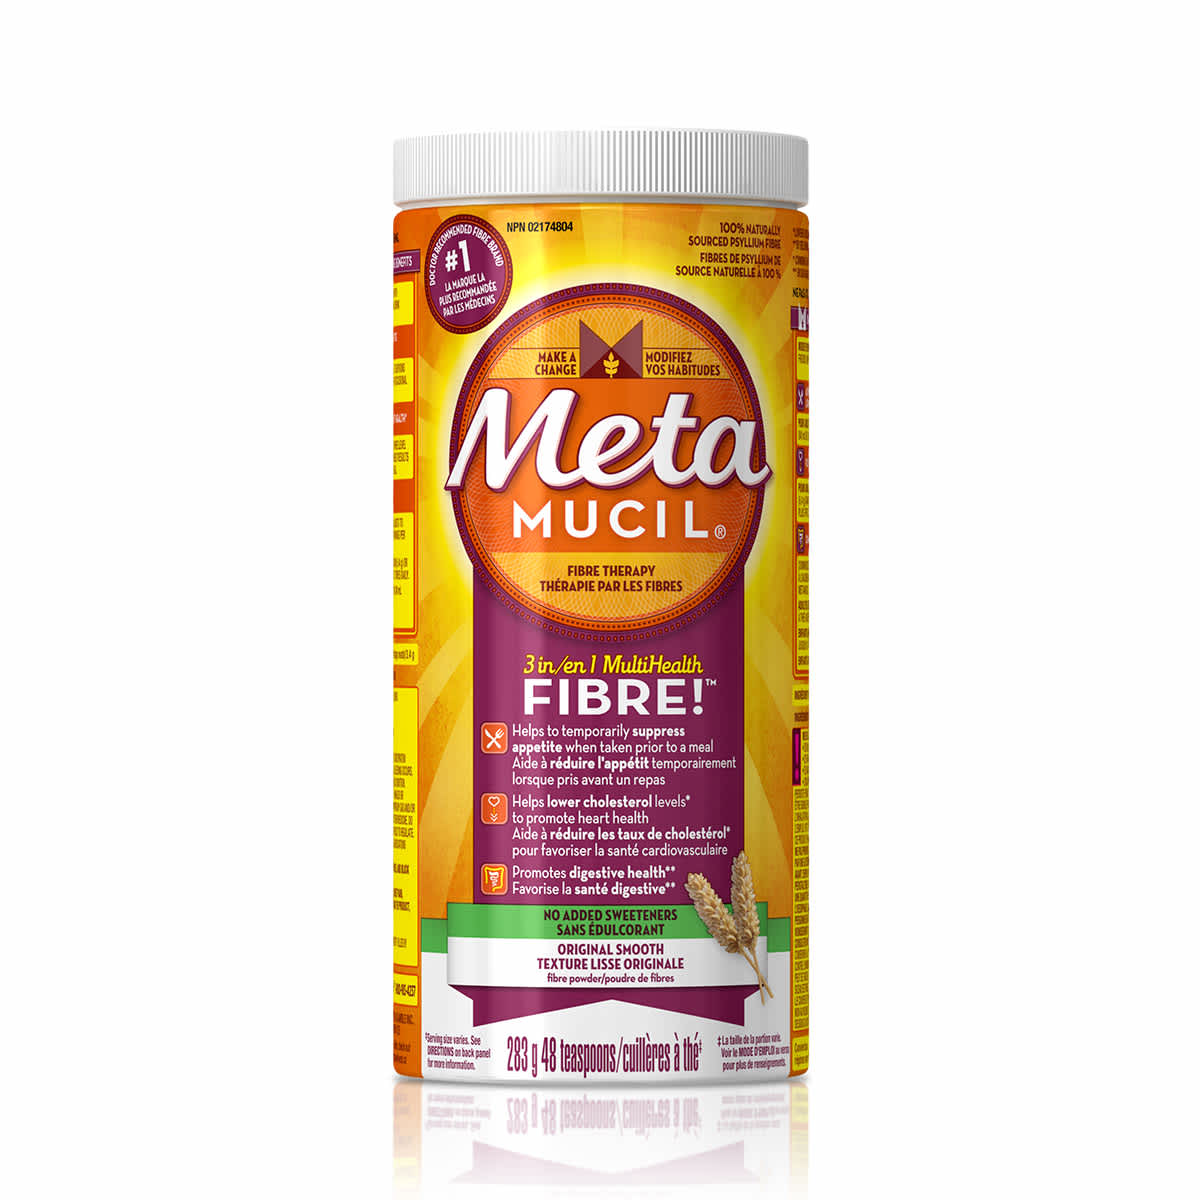 Metamucil Powder with No Added Sweetener | Metamucil